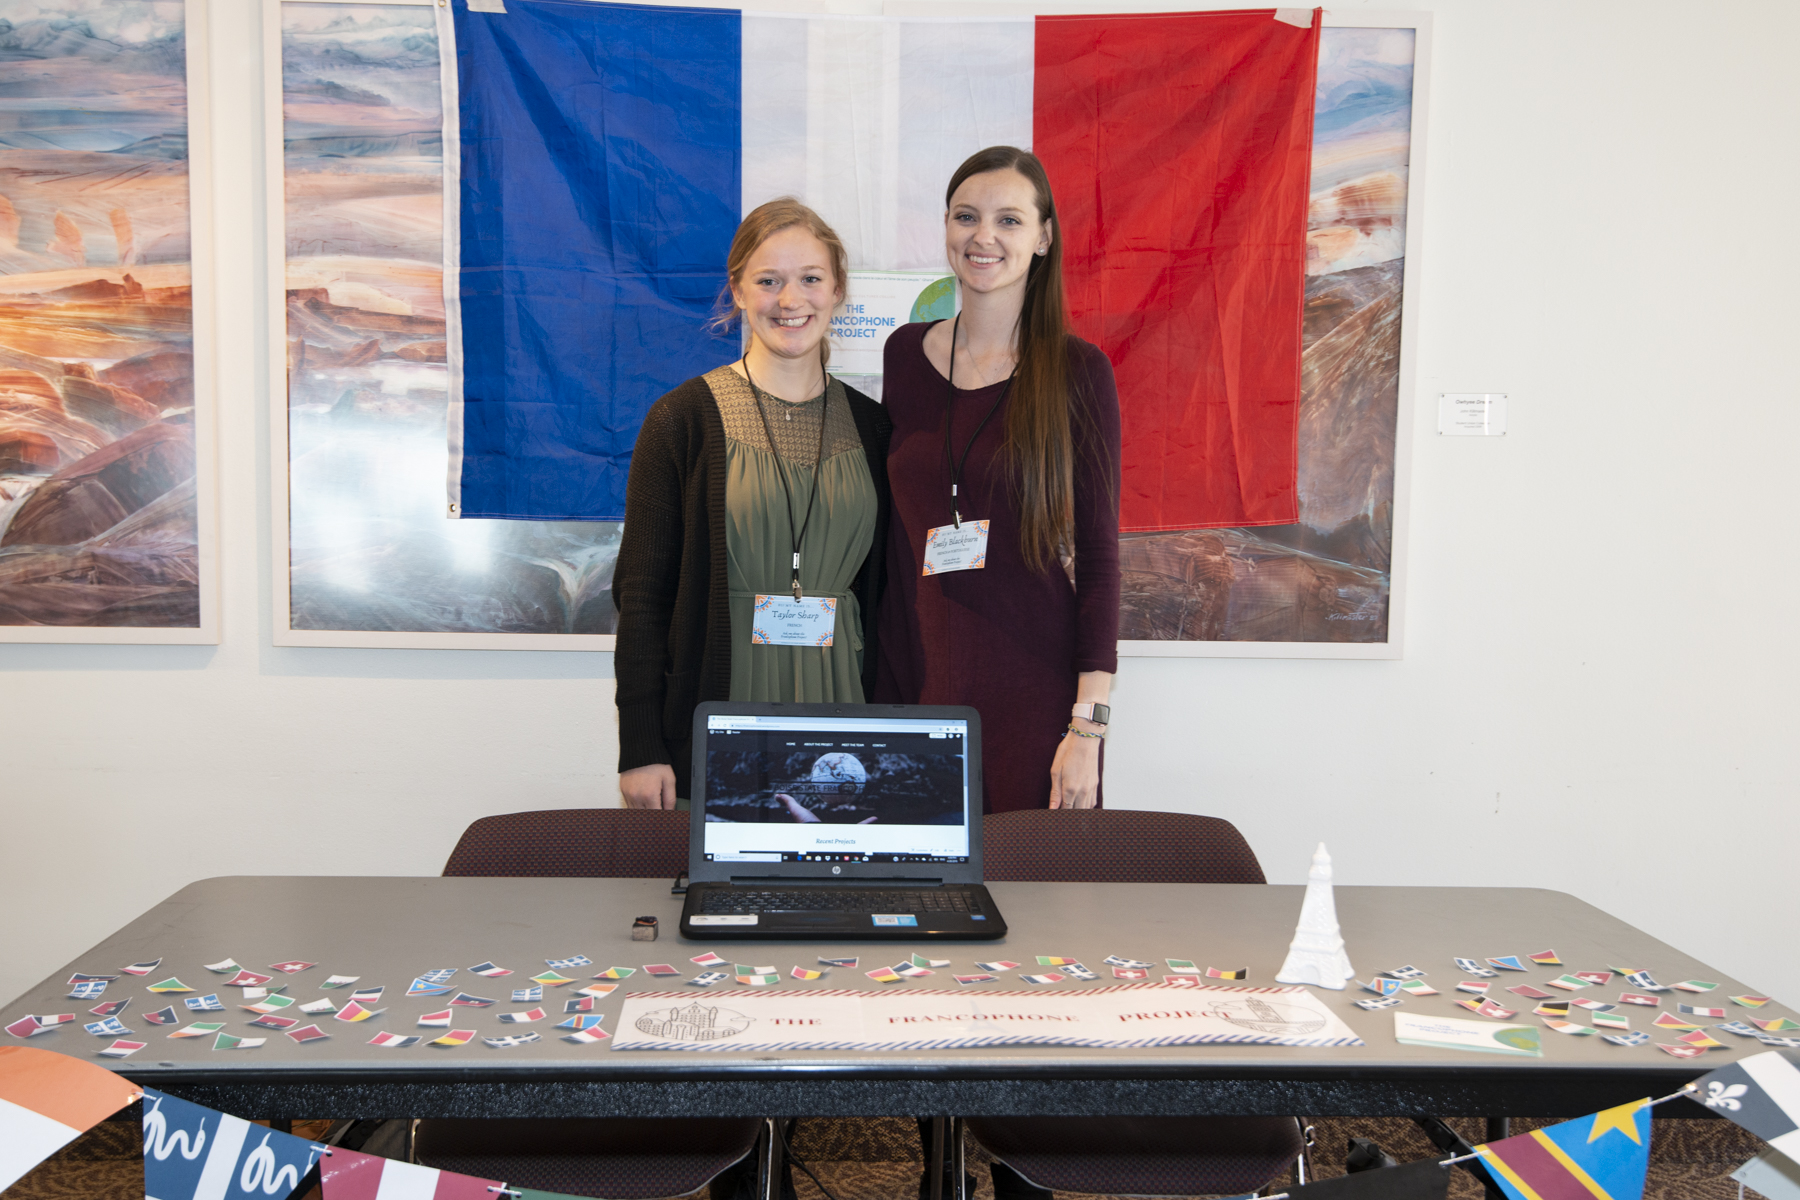 2 Students smiling with their table setup